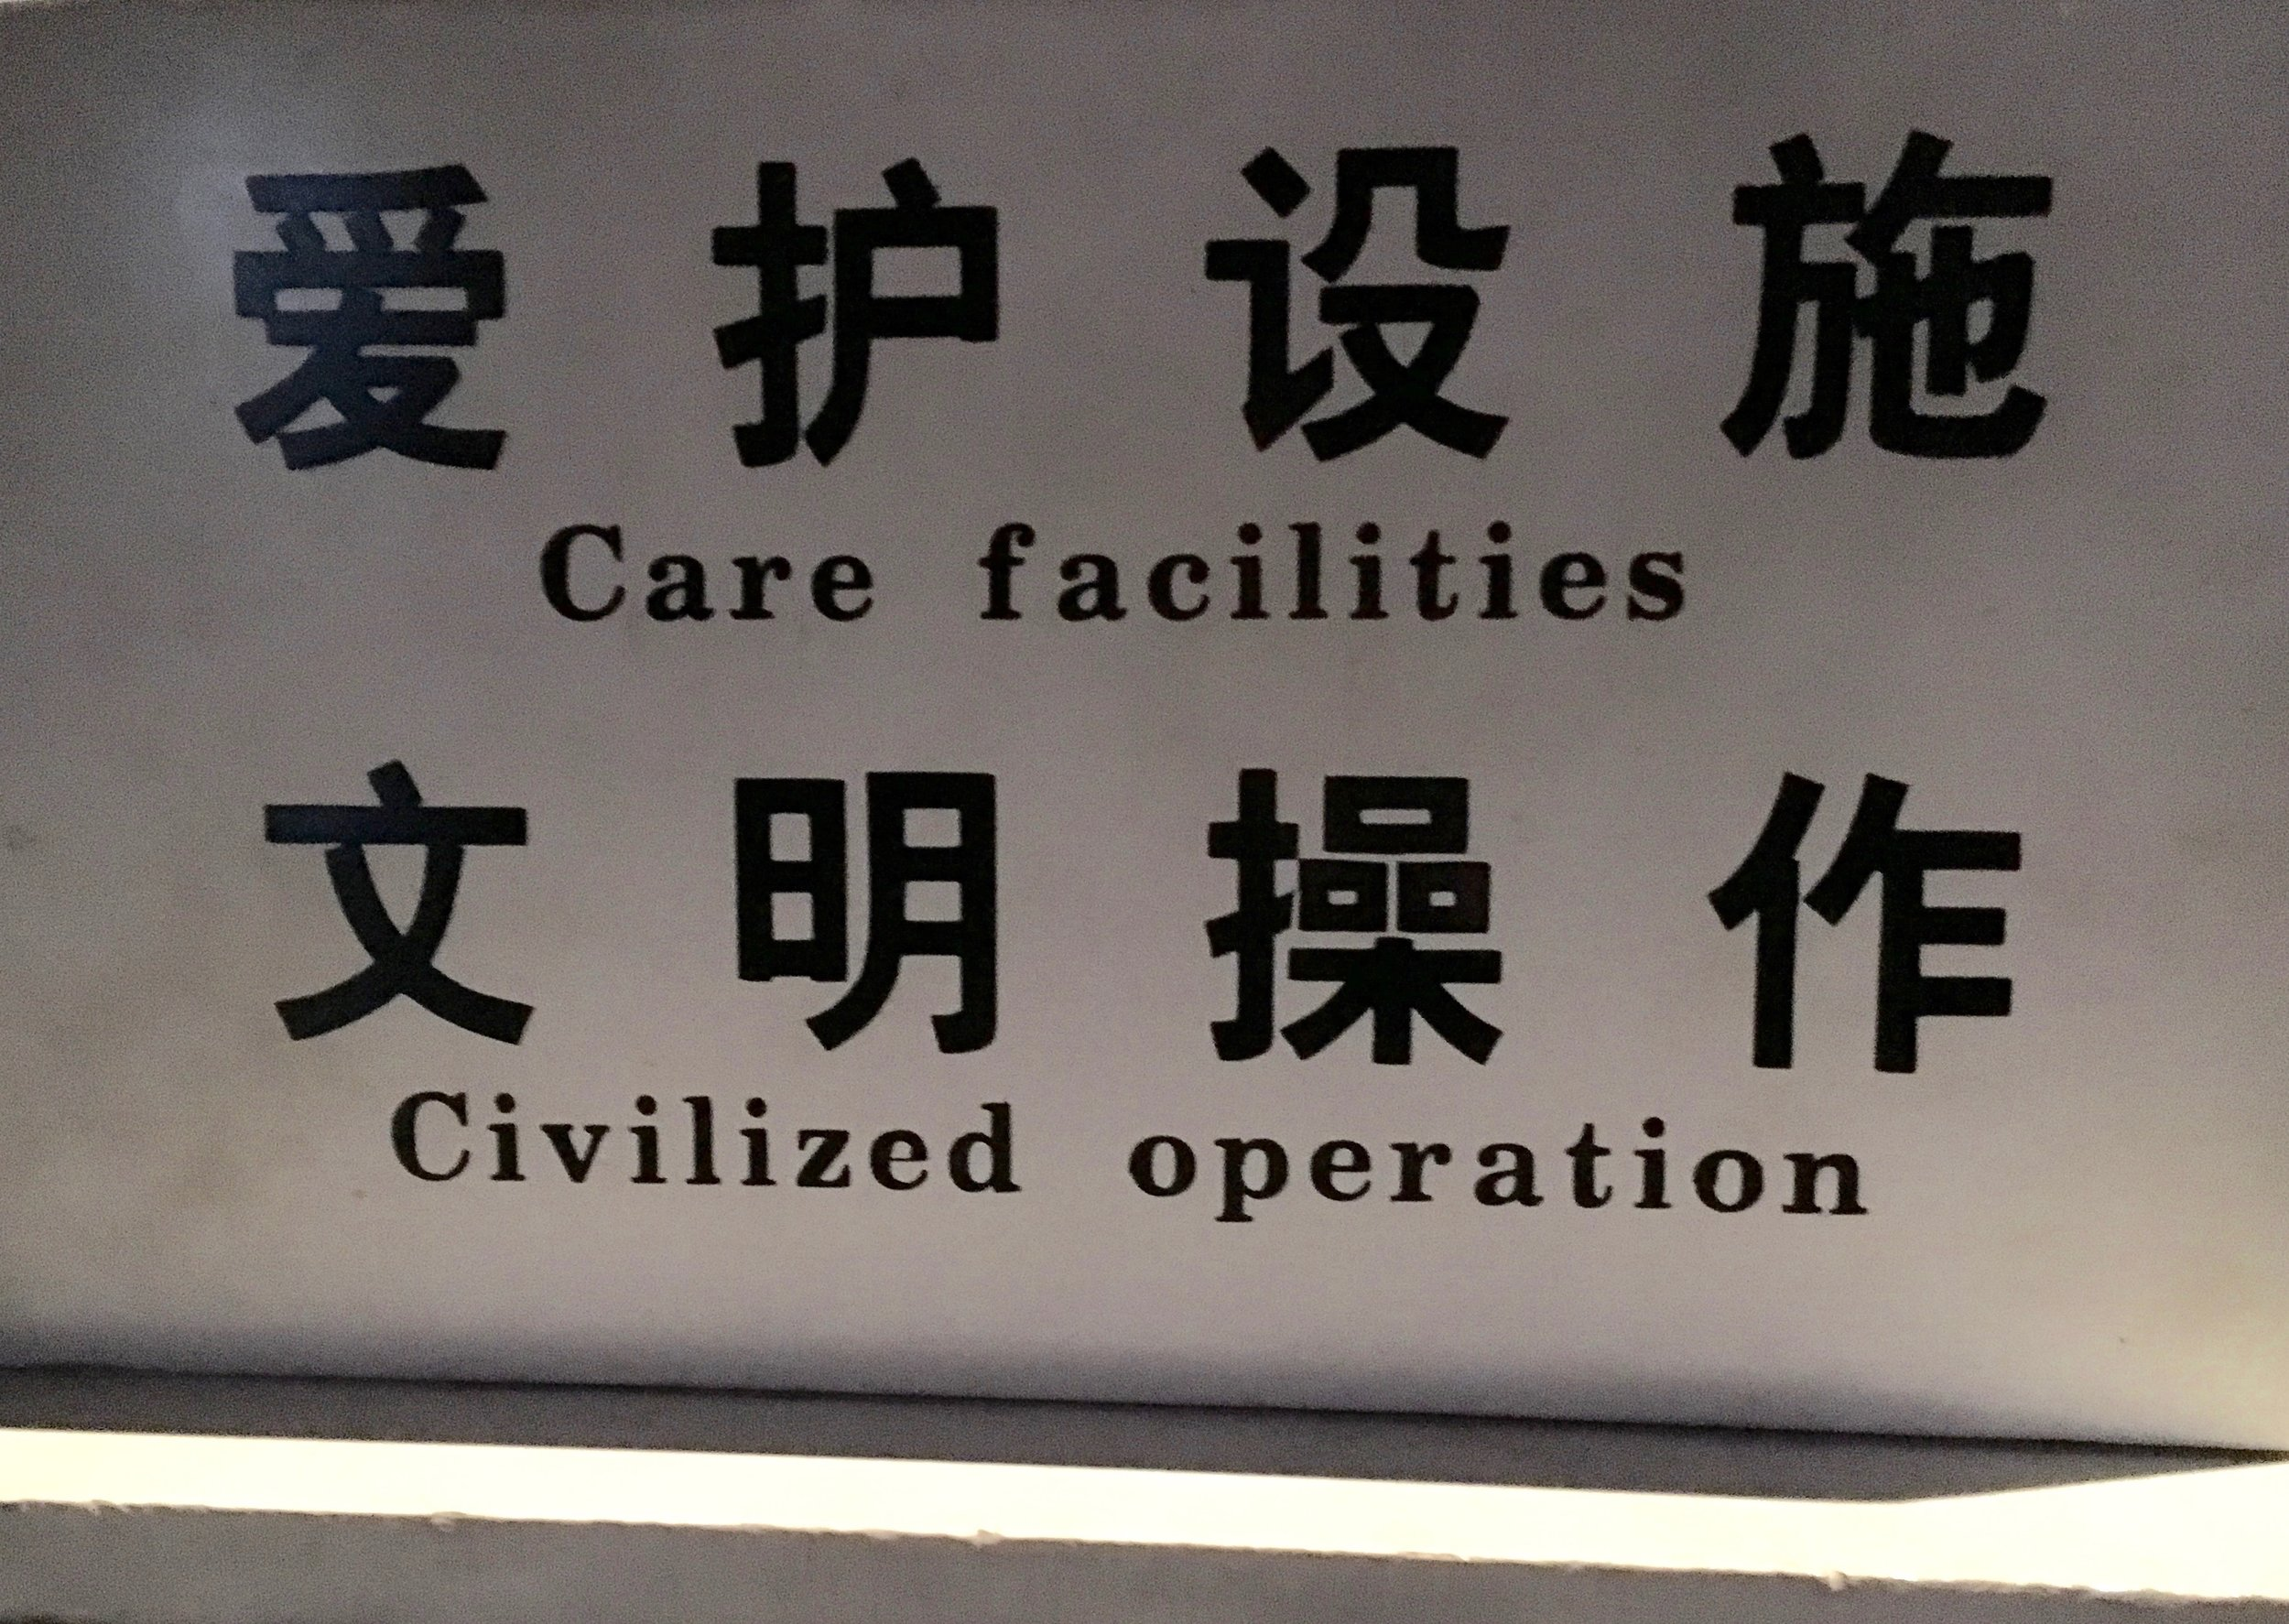 I wish I'd taken note of where this sign is.